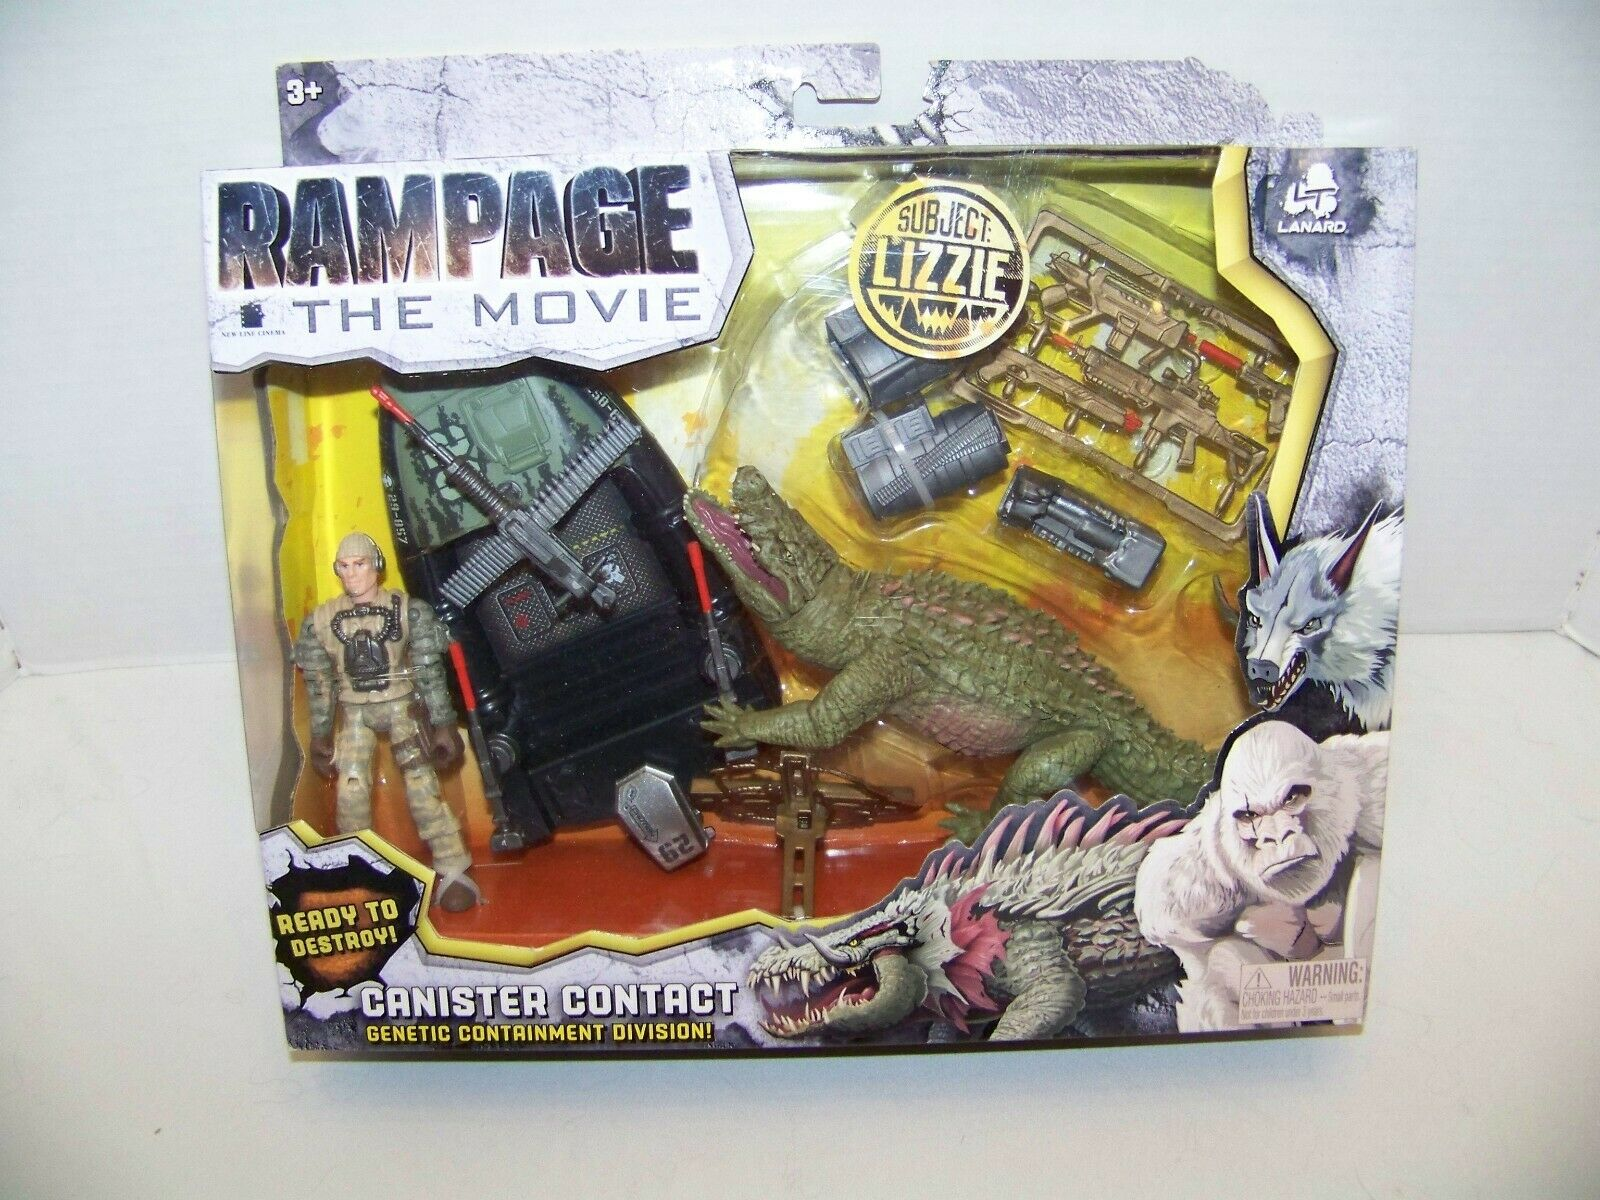 RAMPAGE THE MOVIE CANISTER CONTACT SUBJECT LIZZIE. LANARD TOYS. NEW.